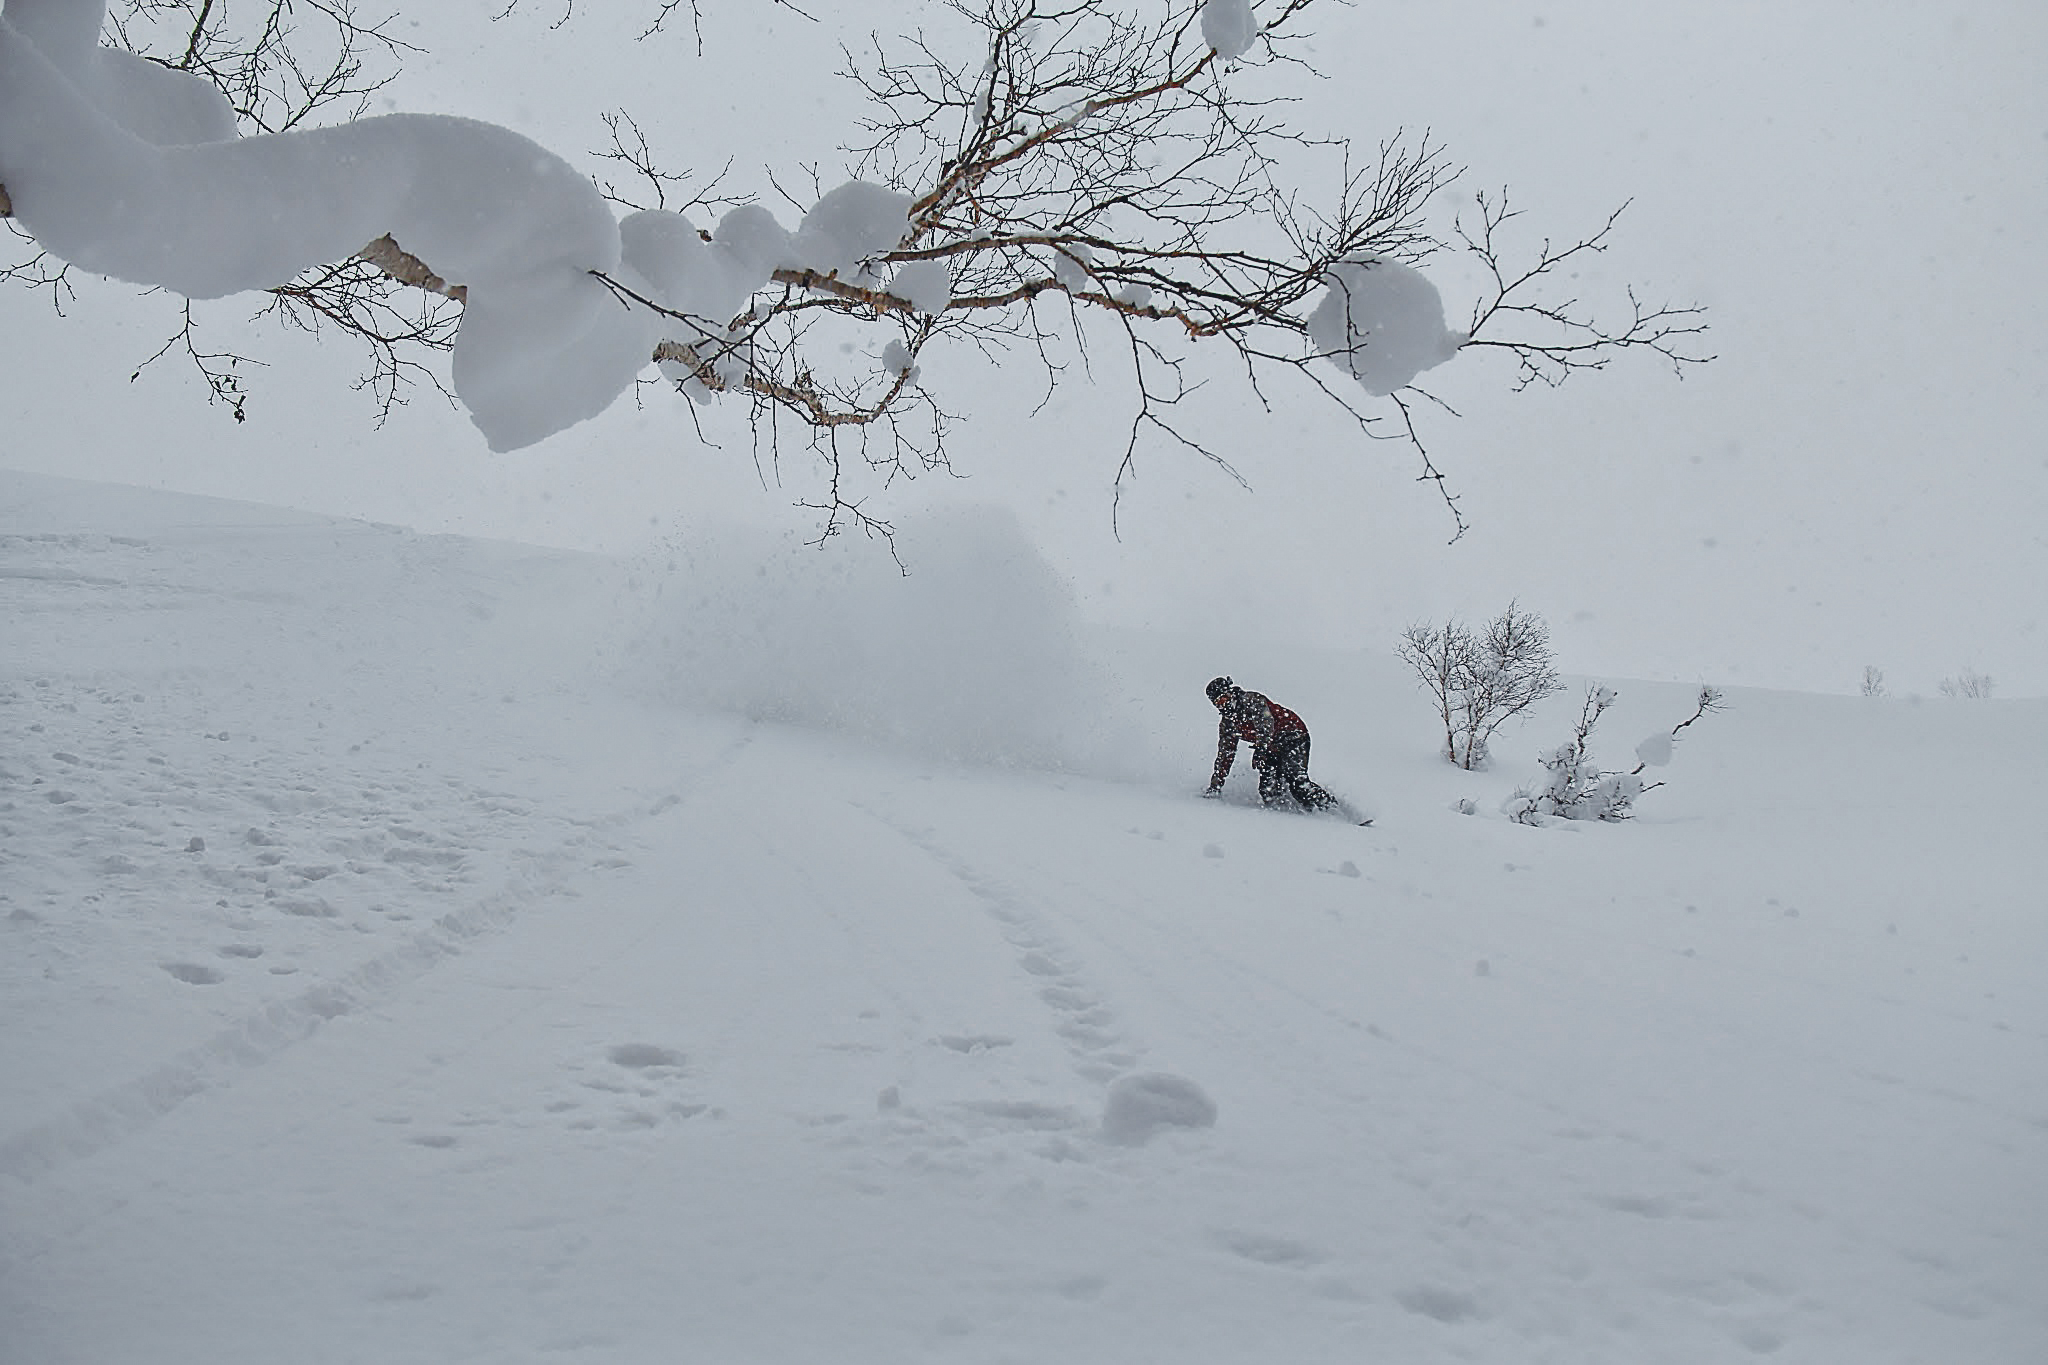 Snowboarding under a tree in deep snow with First Tours